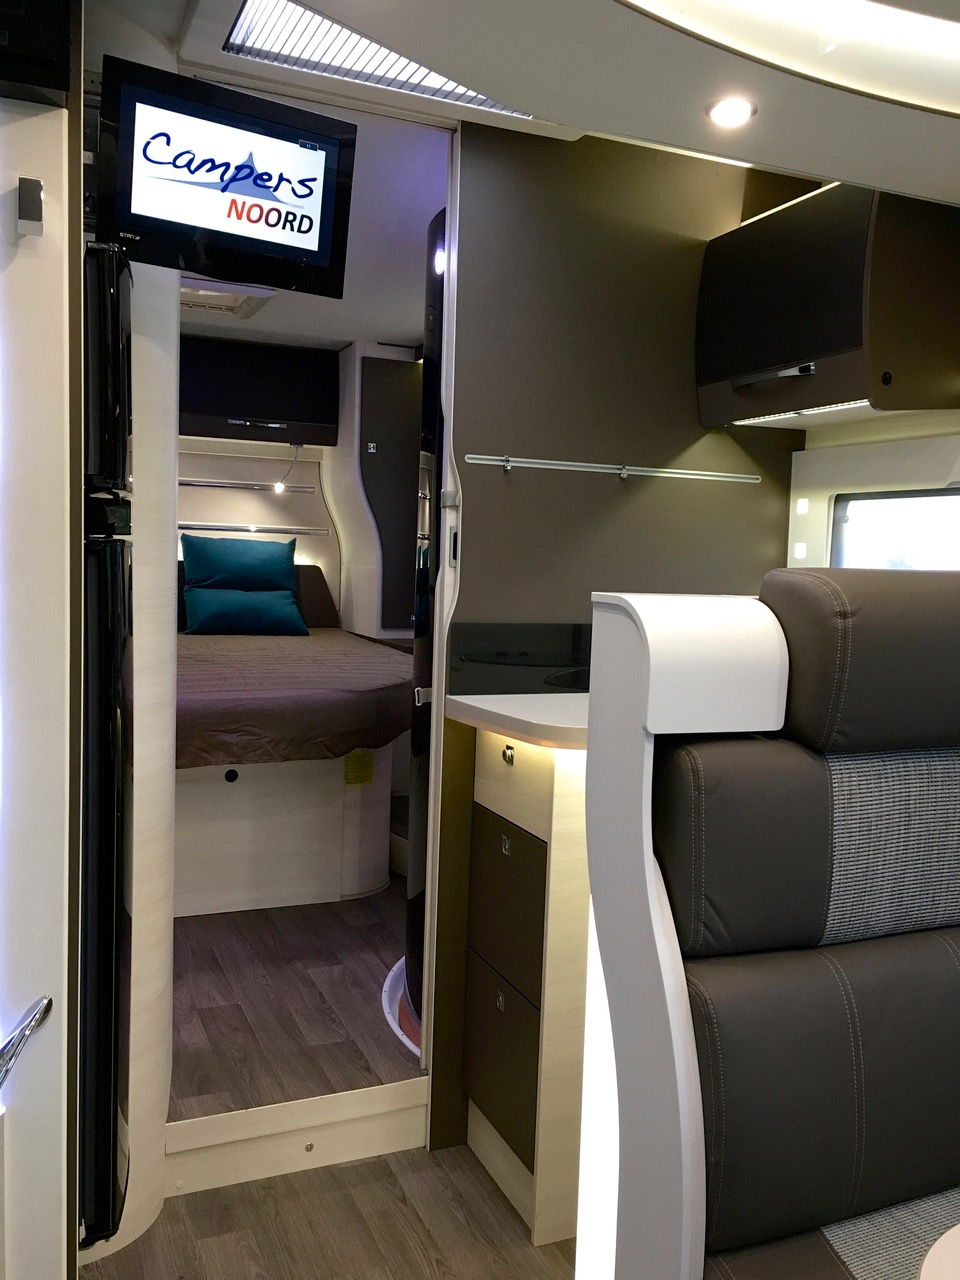 Foto TV Chausson 718 XLB 2017 Campers Noord